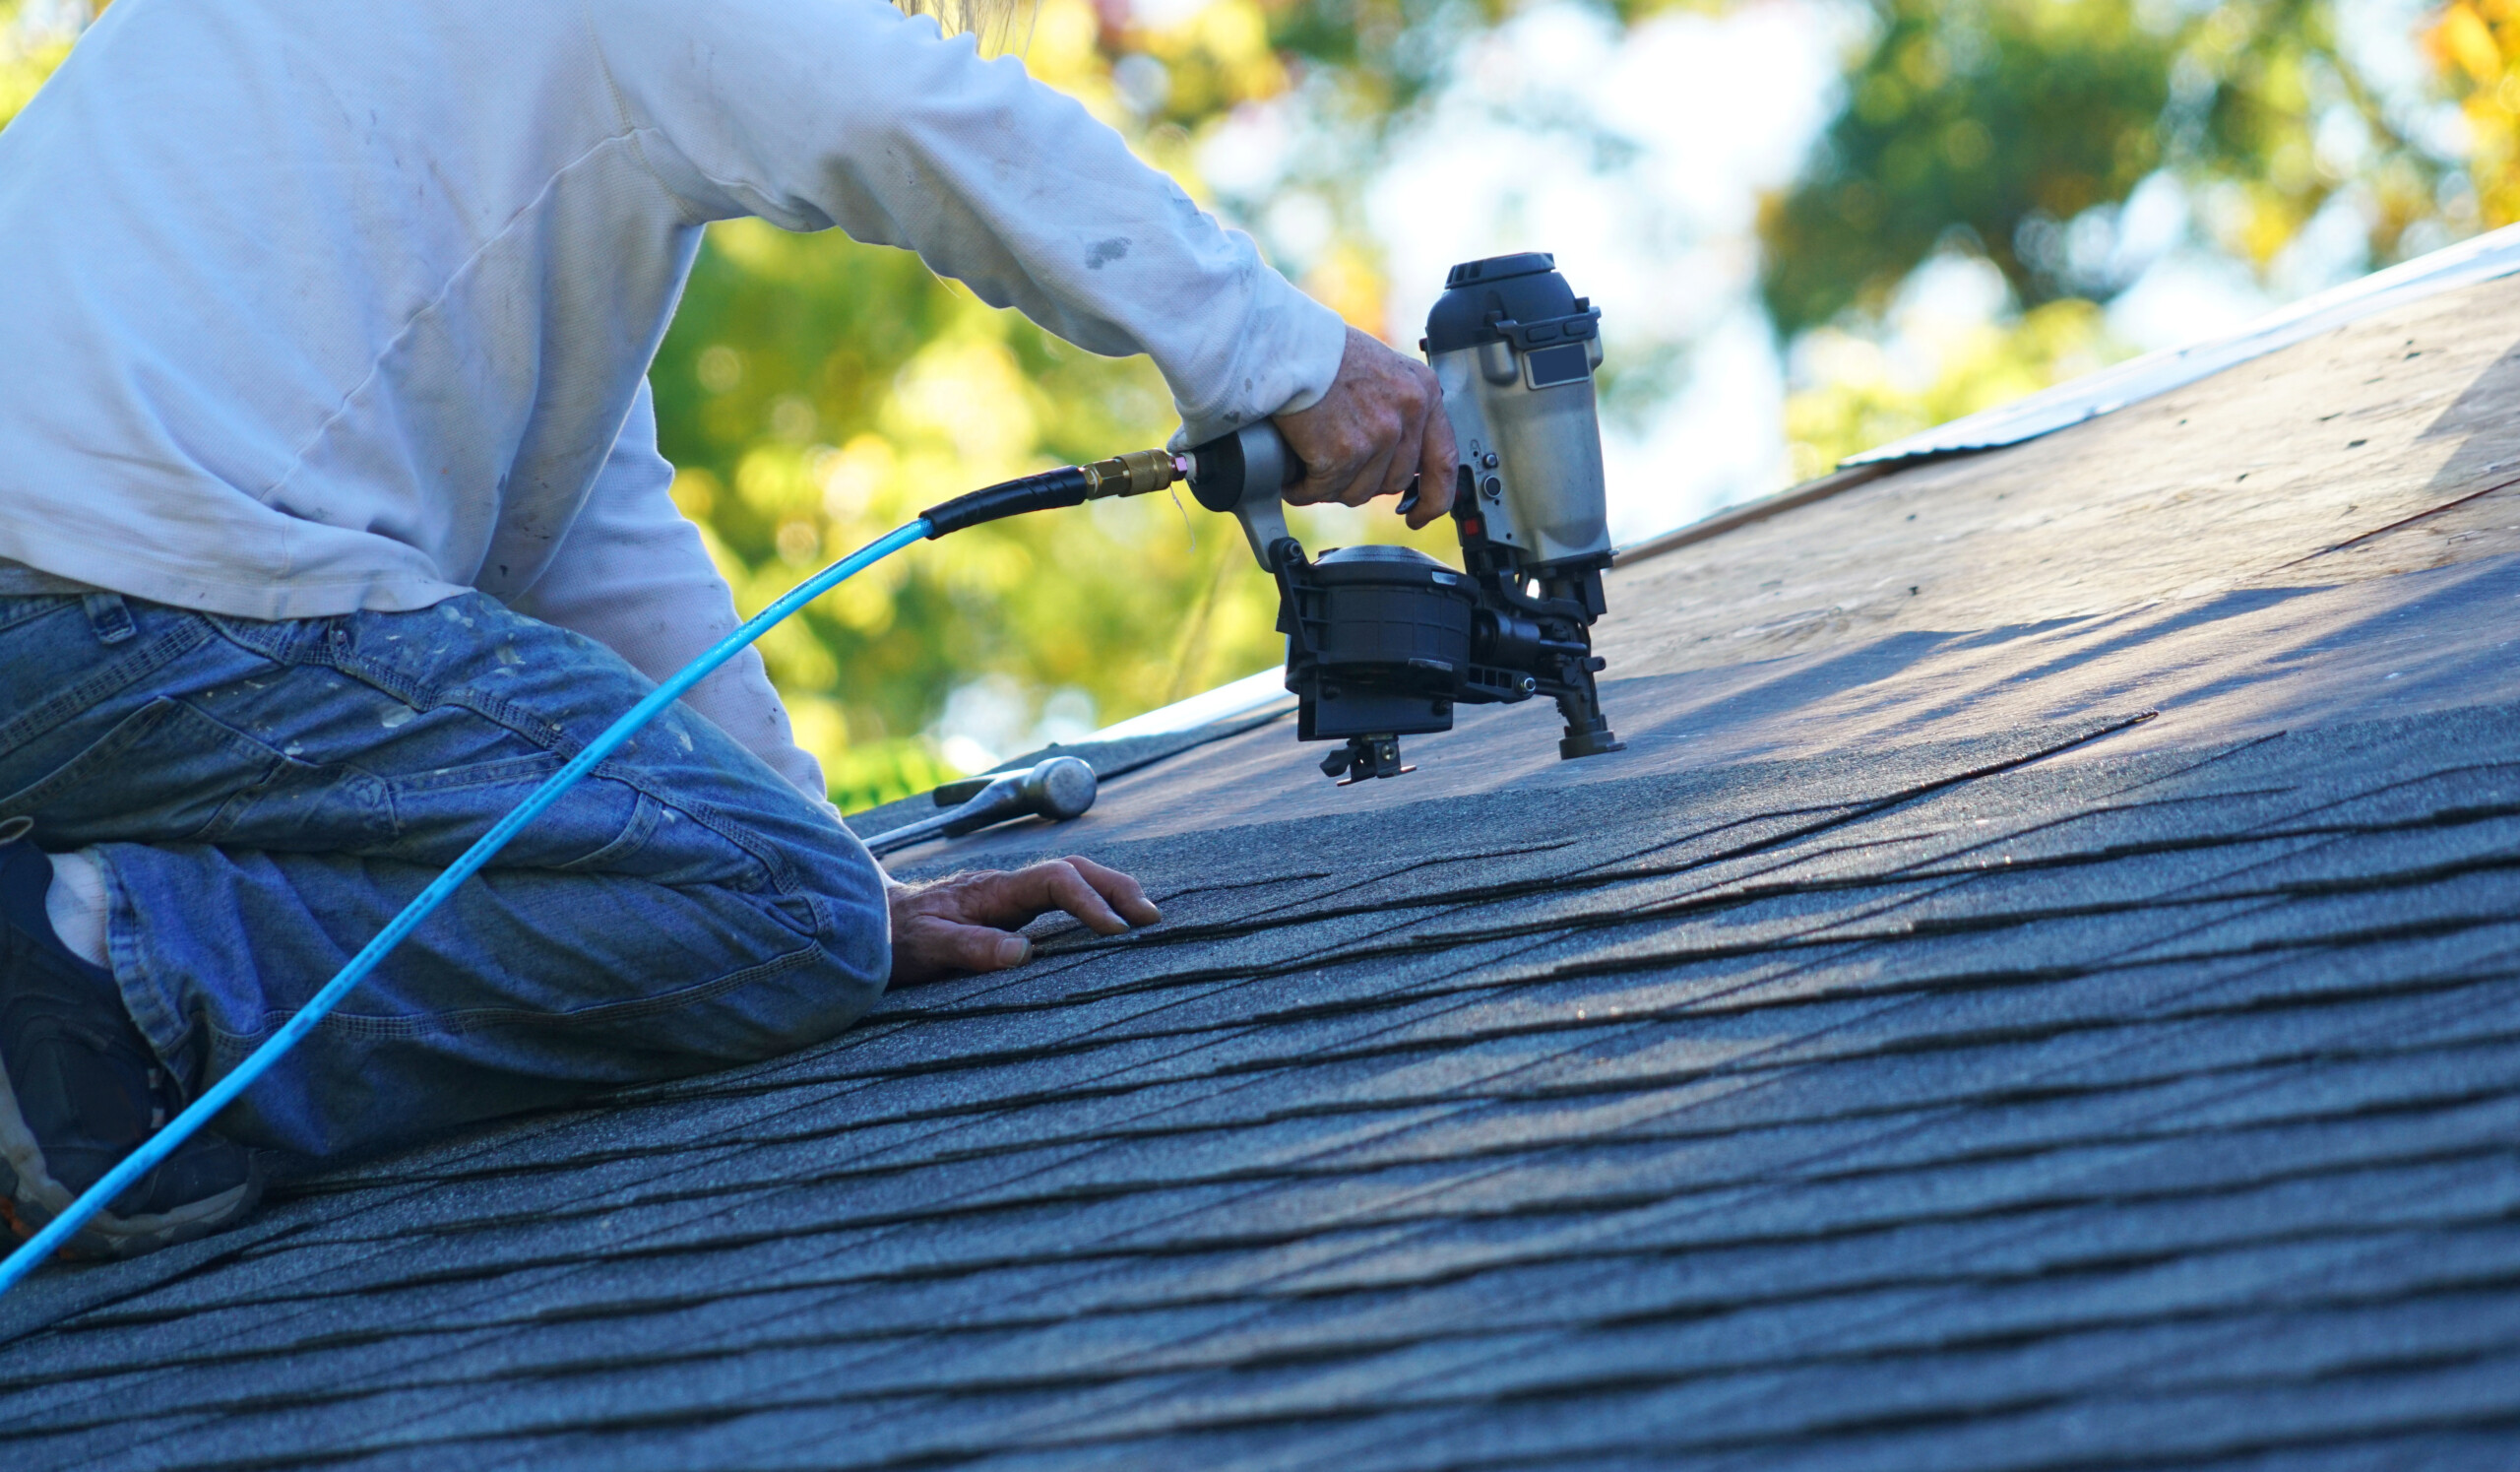 17 Roof Repair Tips That Can Save You Money